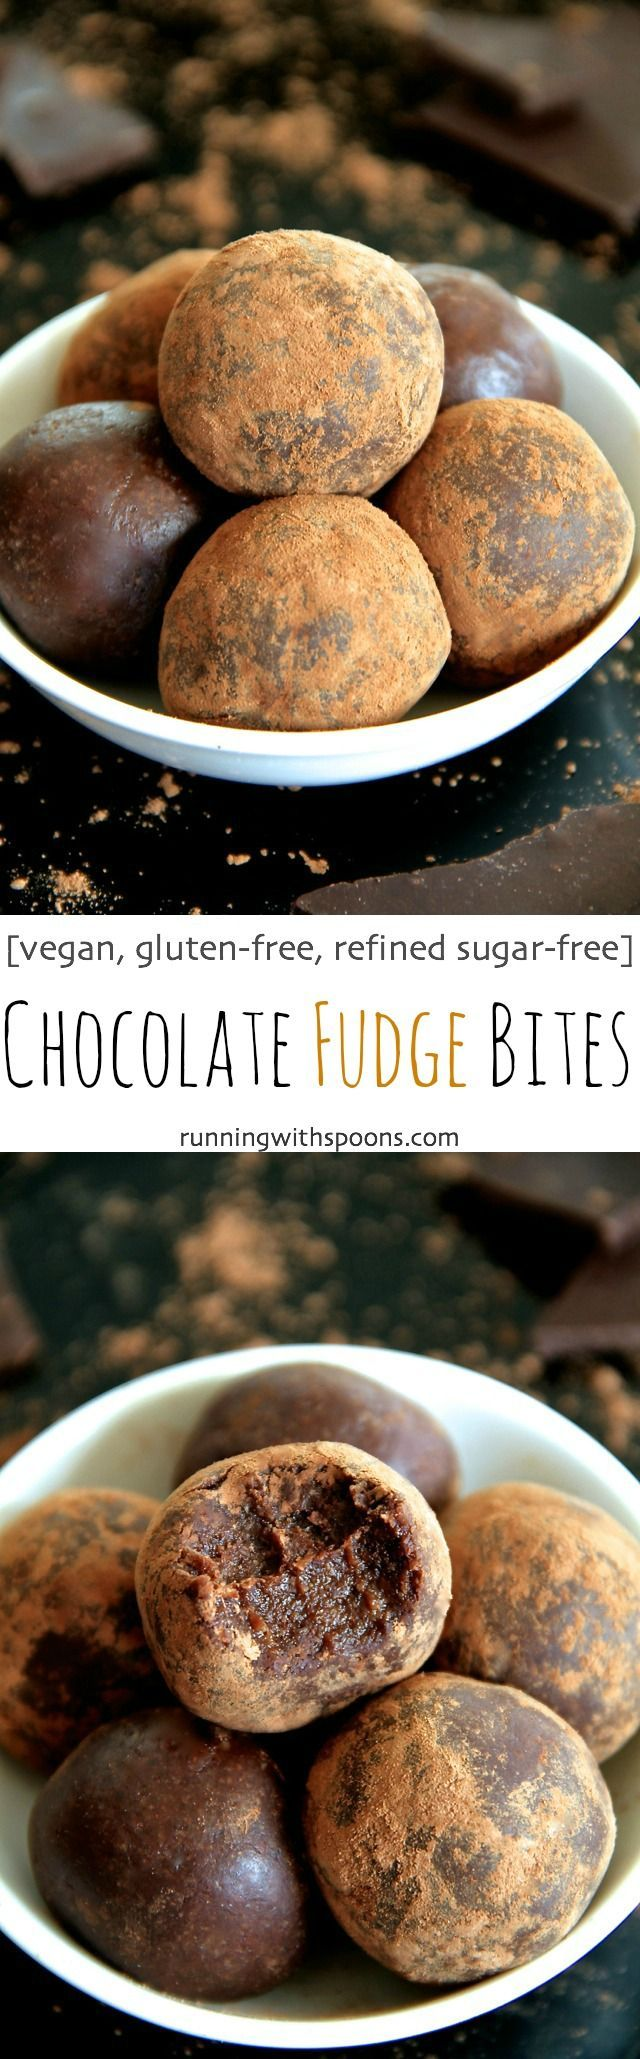 Chocolate Fudge Bites -- Soft, tender, and loaded with chocolate flavour, these melt-in-your-mouth bites taste ridiculously decadent while being made with good-for-you ingredients. Gluten-free, vegan, and customizable depending on your dietary needs, this is a healthy treat that everyone will love!    runningwithspoons...